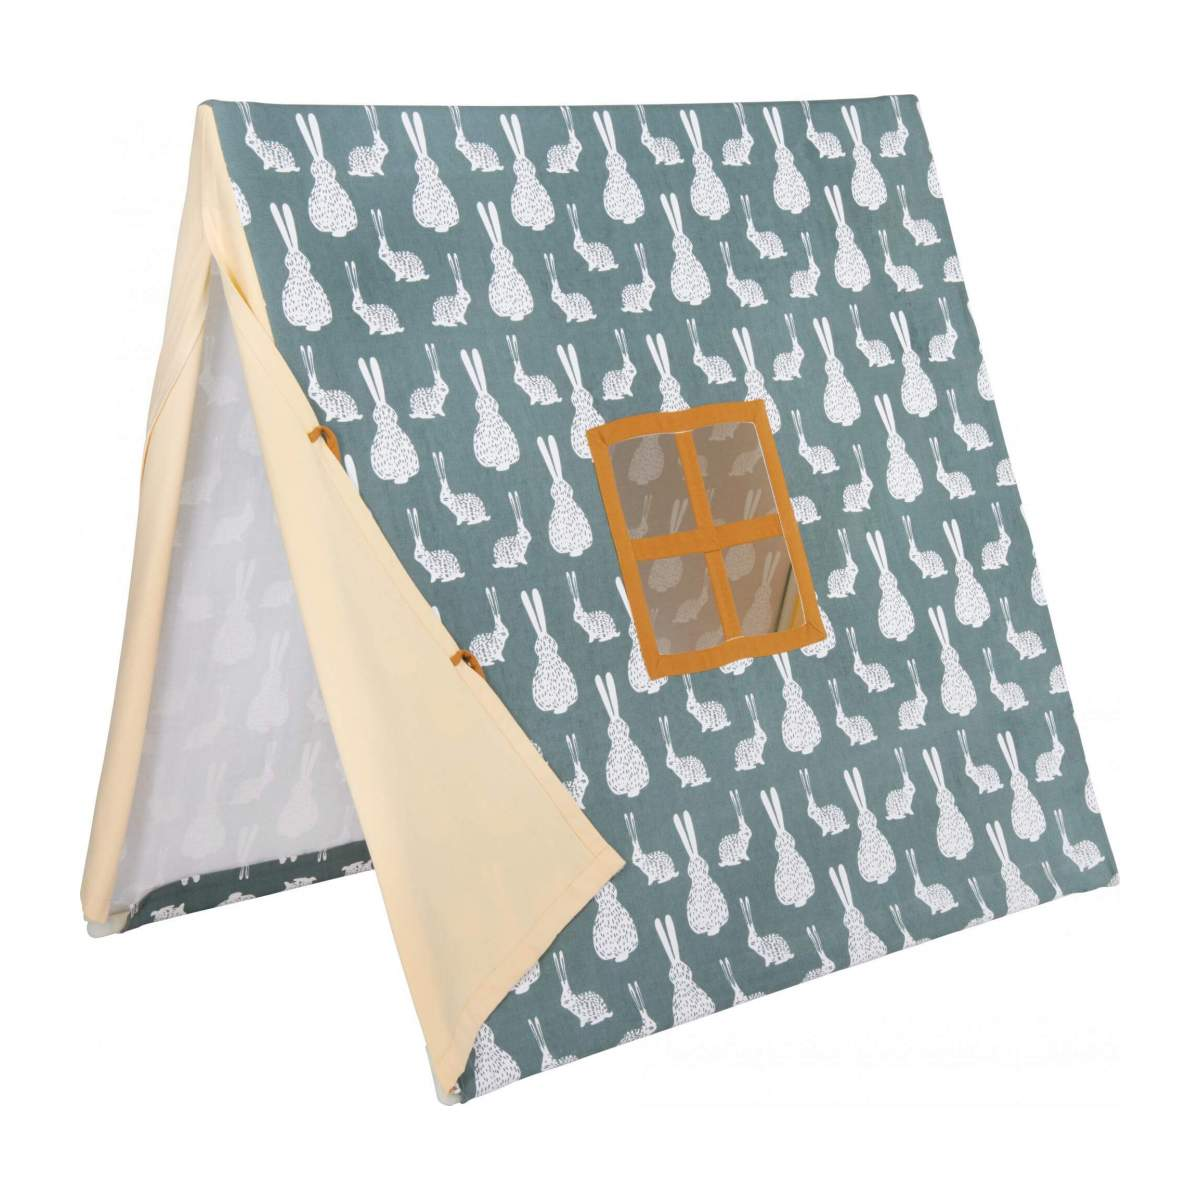 Tent made of cotton, bunny pattern n°7